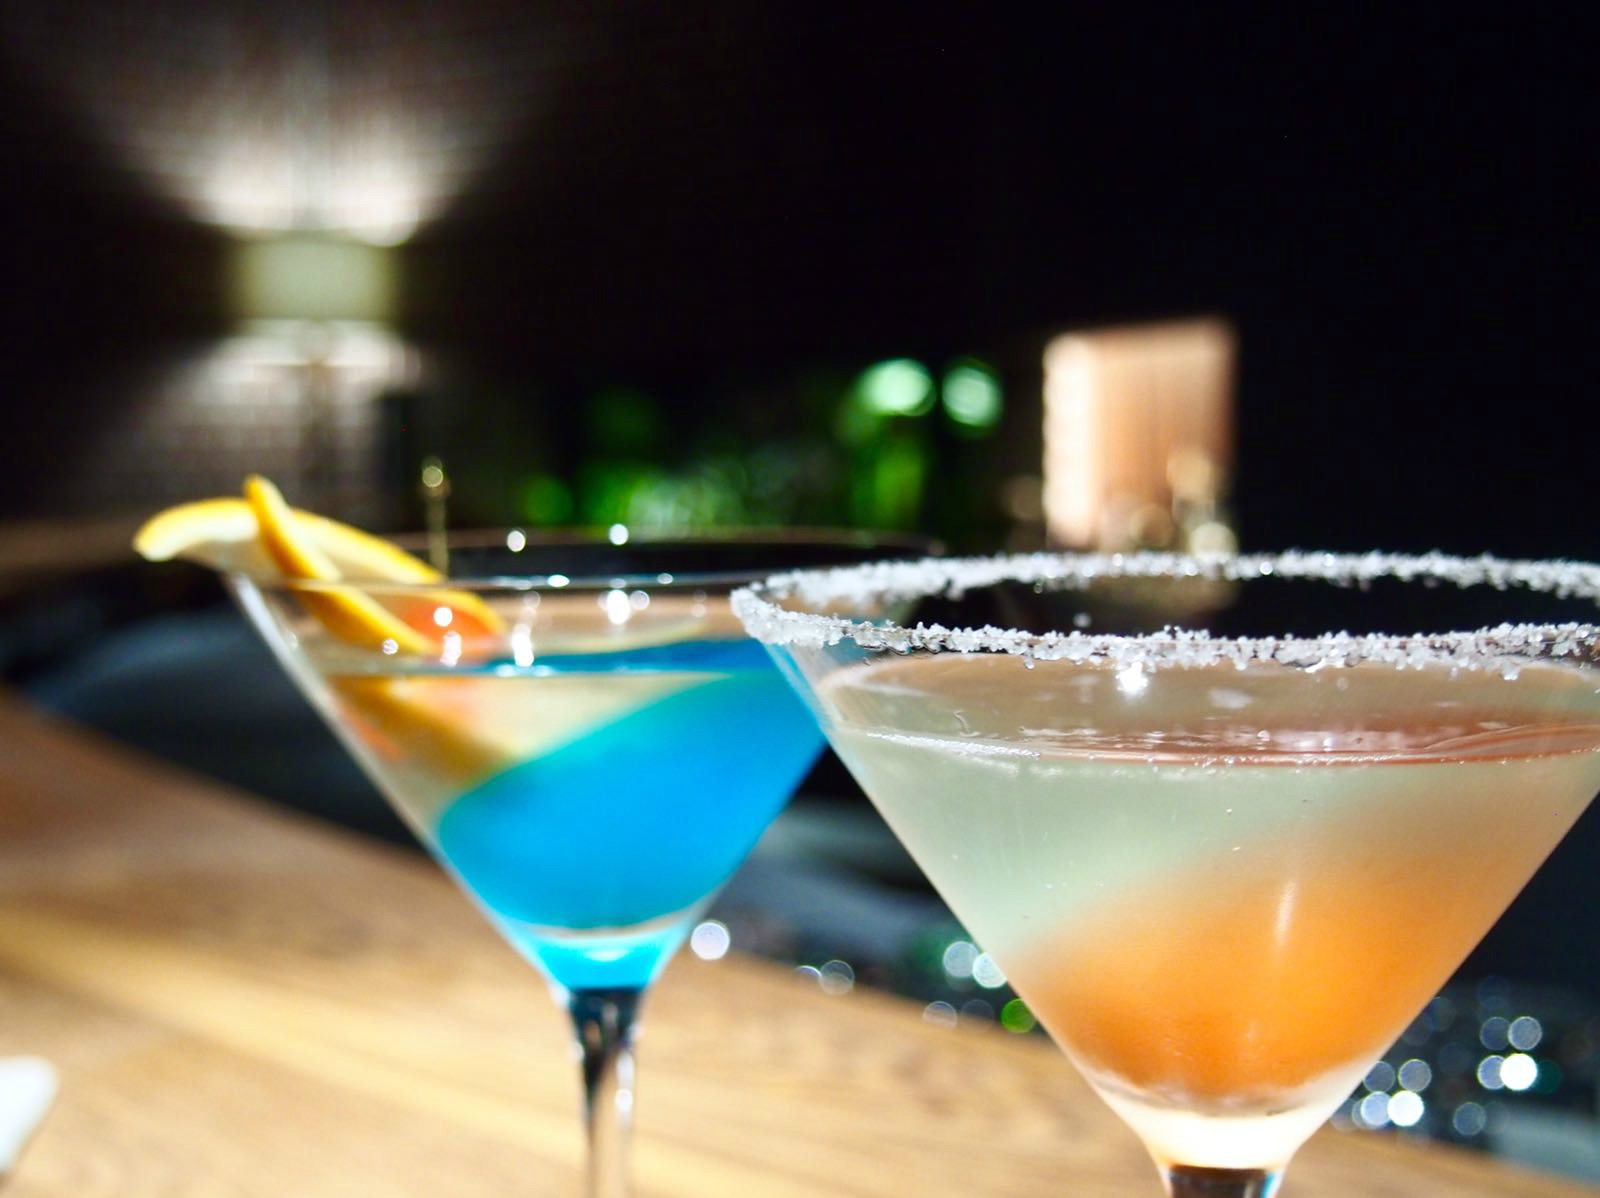 ritz-carlton okinawa cocktails